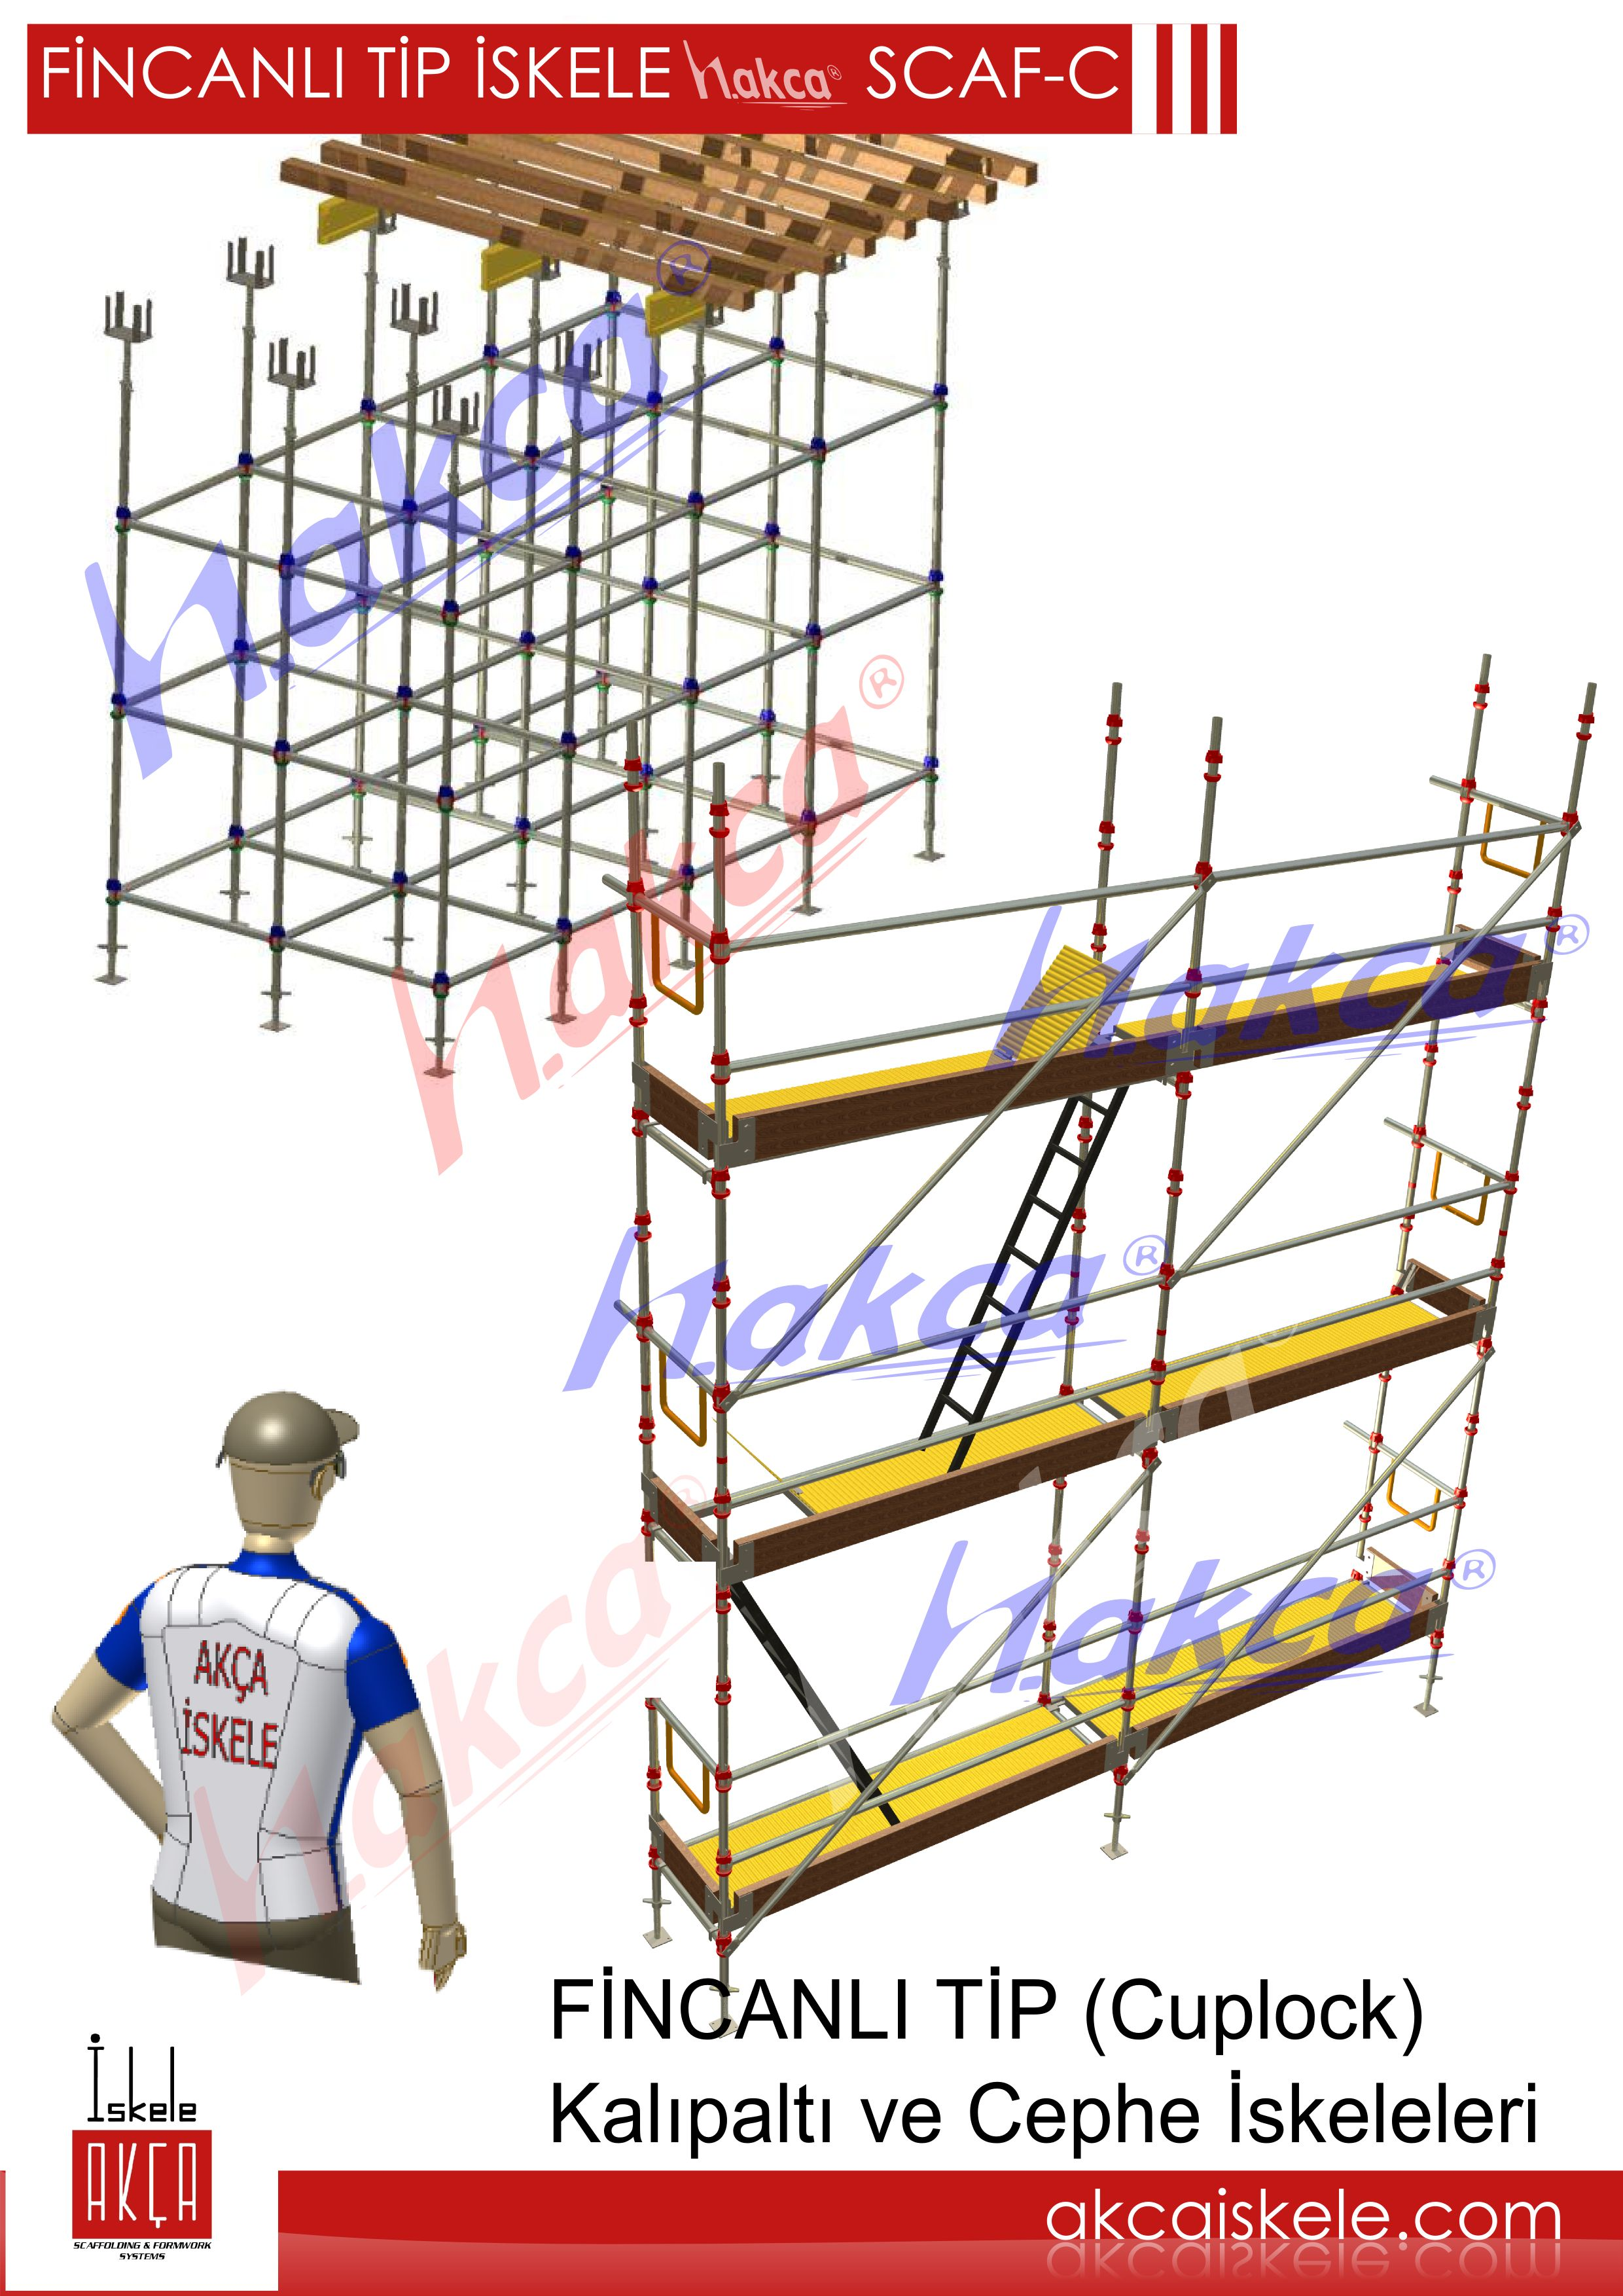 CUPLOCK TYPE SCAFFOLDING SYSTEMS SCAF-C -Cup lock Type Scaffolding